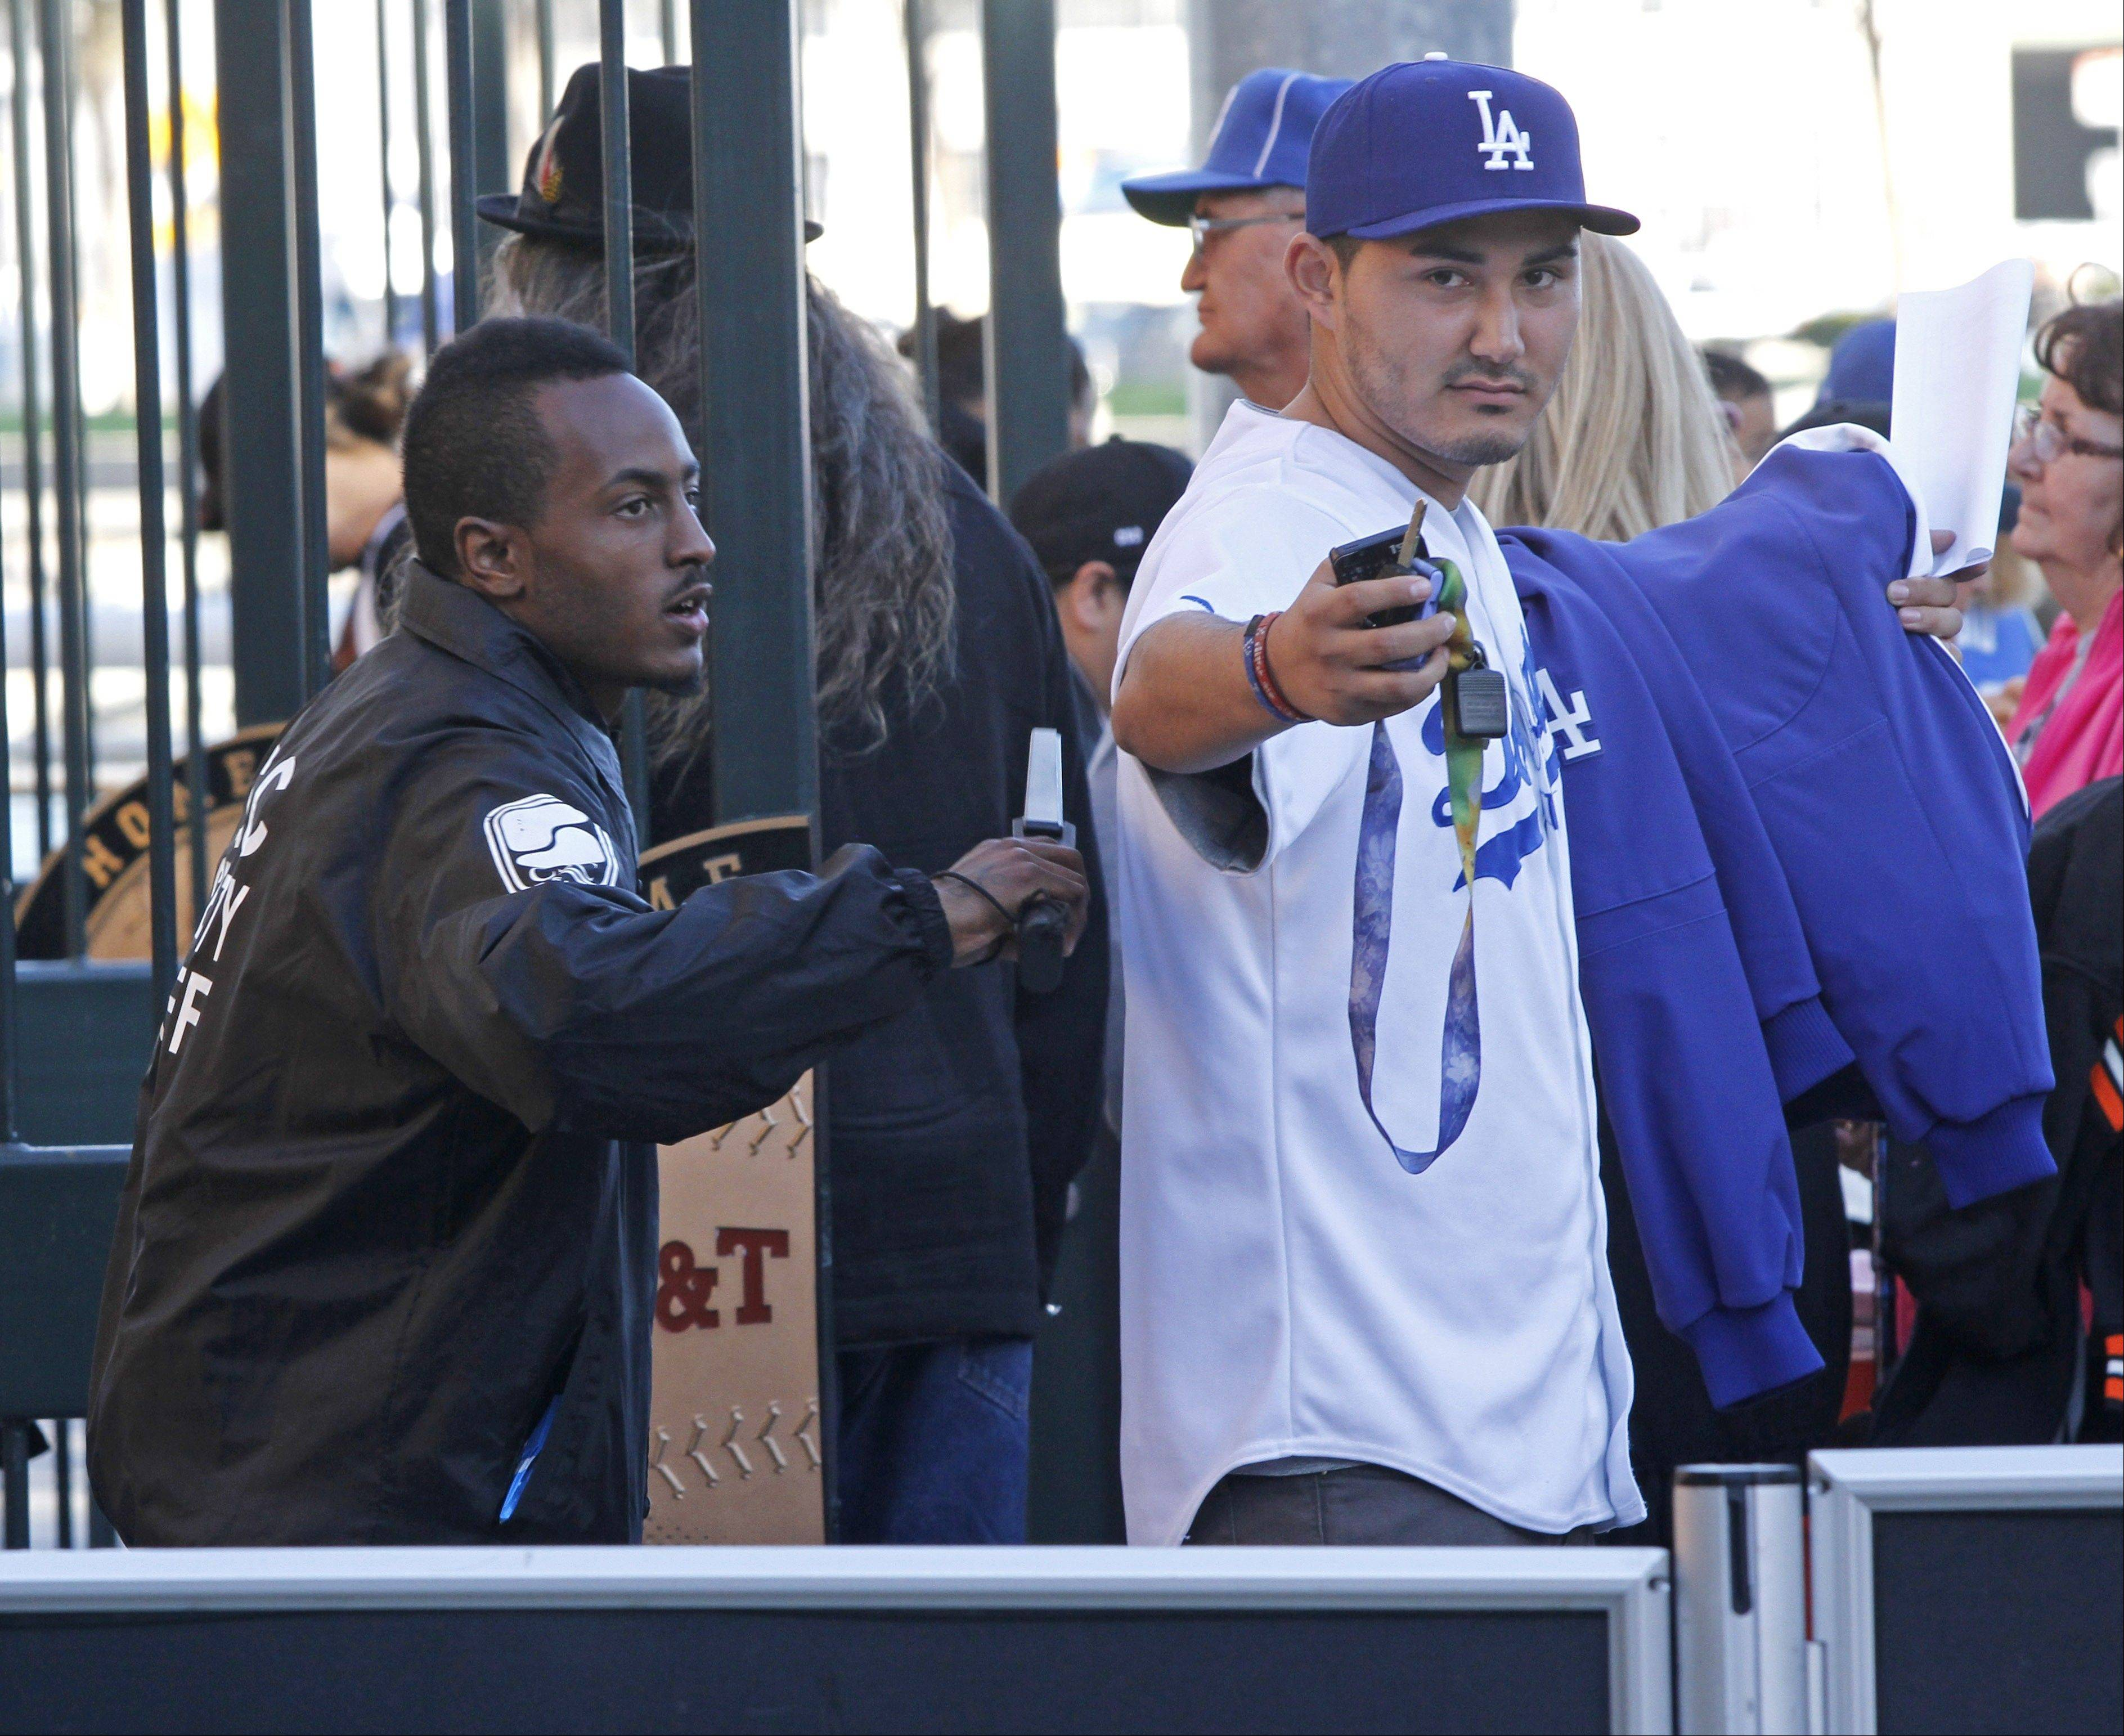 A security guard checks a Los Angeles Dodgers fan at the stadium entrance before Thursday's game between the Giants and the Dodgers in San Francisco.